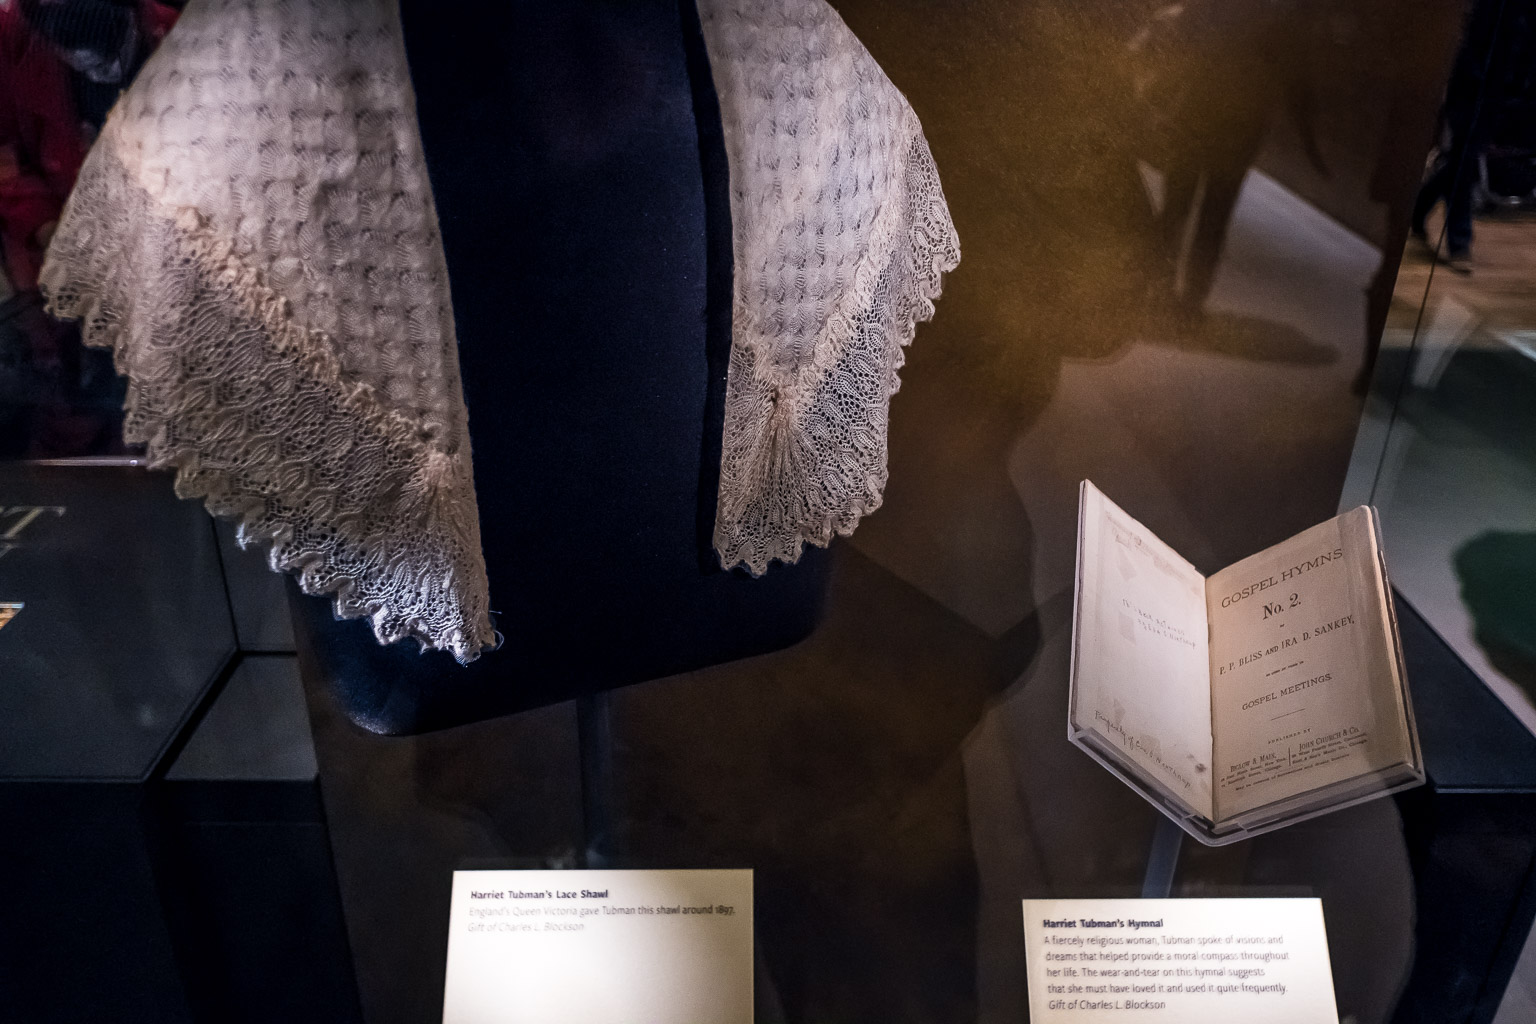 England's Queen Victoria gave Tubman this shawl around 1897. Gift of Charles L. Blockson   Harriet Tubman's Hymnal  A fiercely religious woman, Tubman spoke of visions and dreams that helped provide a moral compass throughout her life. The wear-and-tear on this hymnal suggests that she must have loved it and used it quite frequently. Gift of Charles L. Blockson